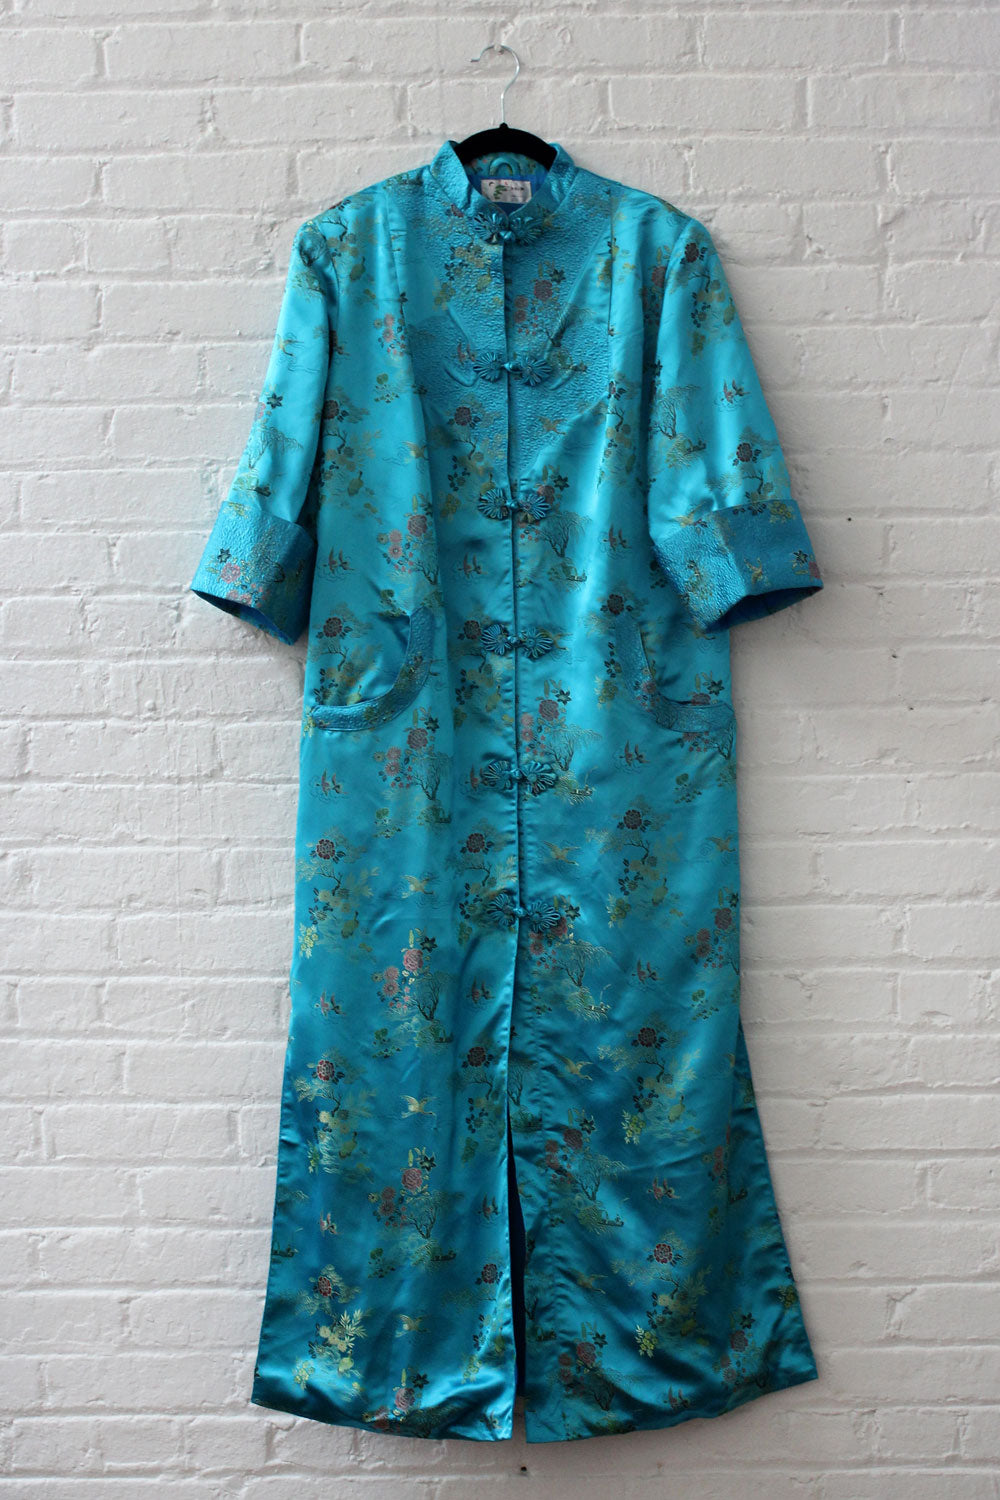 Teal Satin Embroidered Duster S-M/L